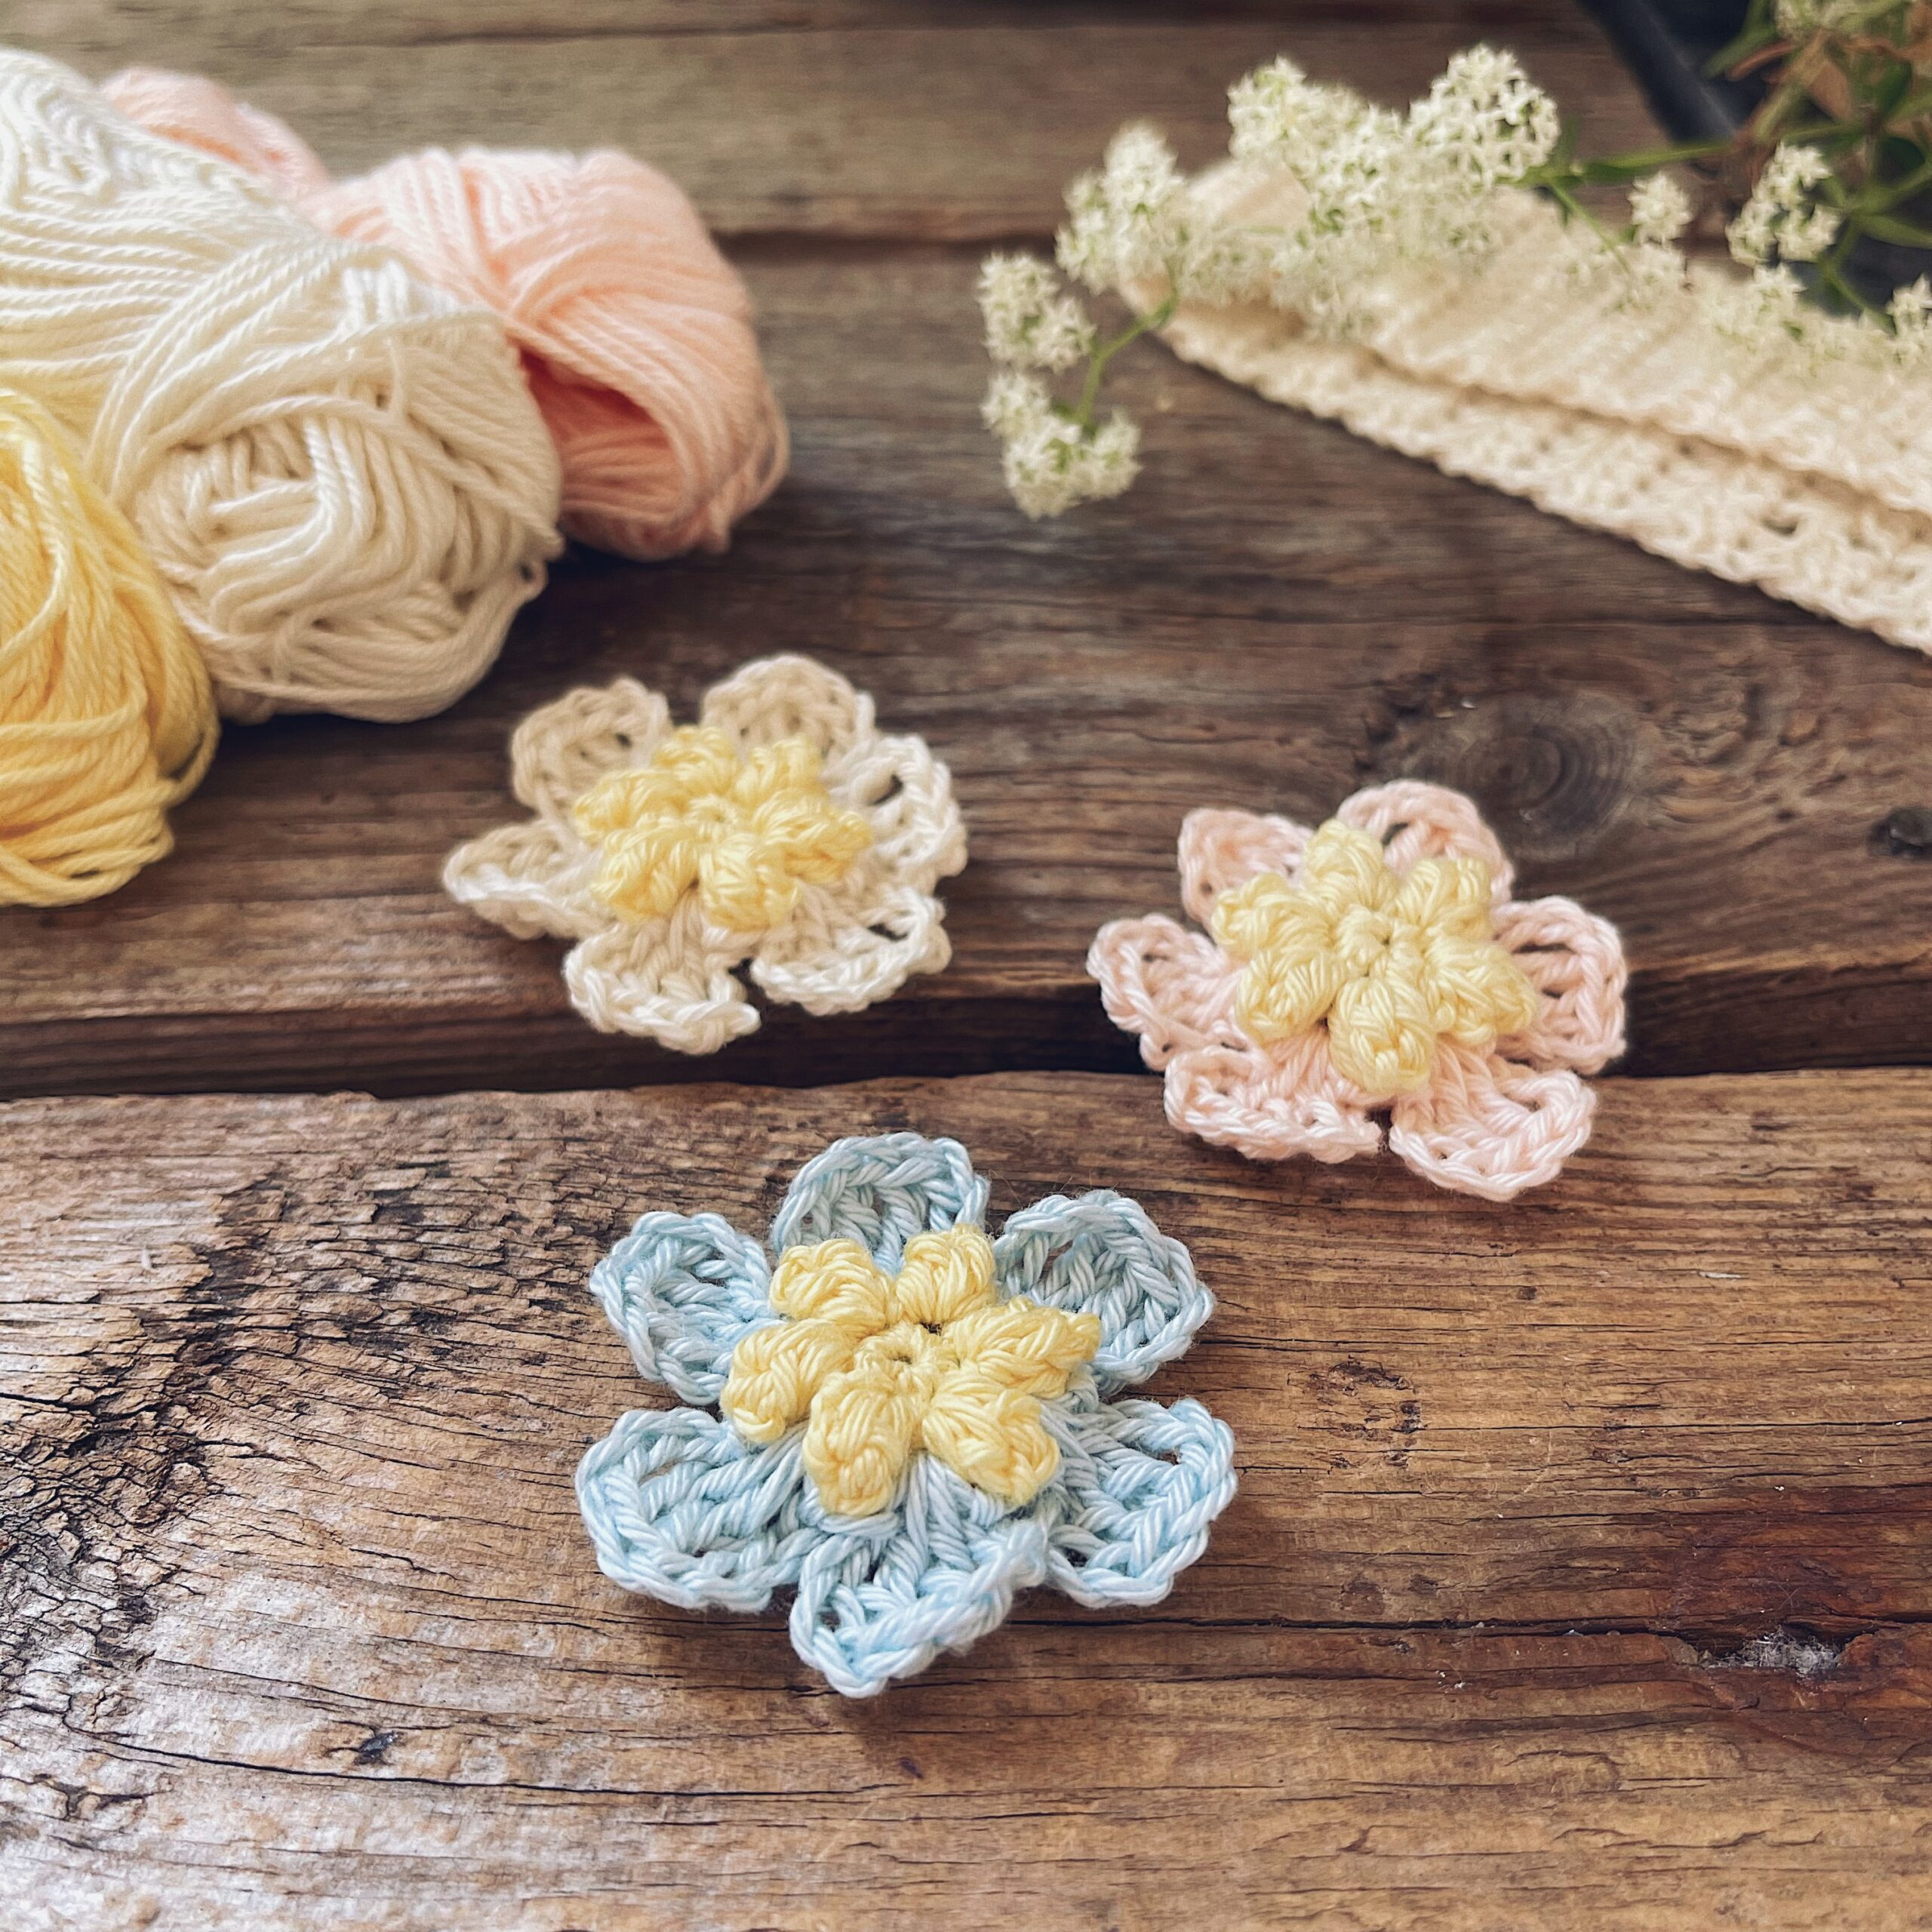 The Pop Drop Flower in three colors placed on a wooden background together with yarn skeins, fresh flowers and a cream coloured Forver Love Headband